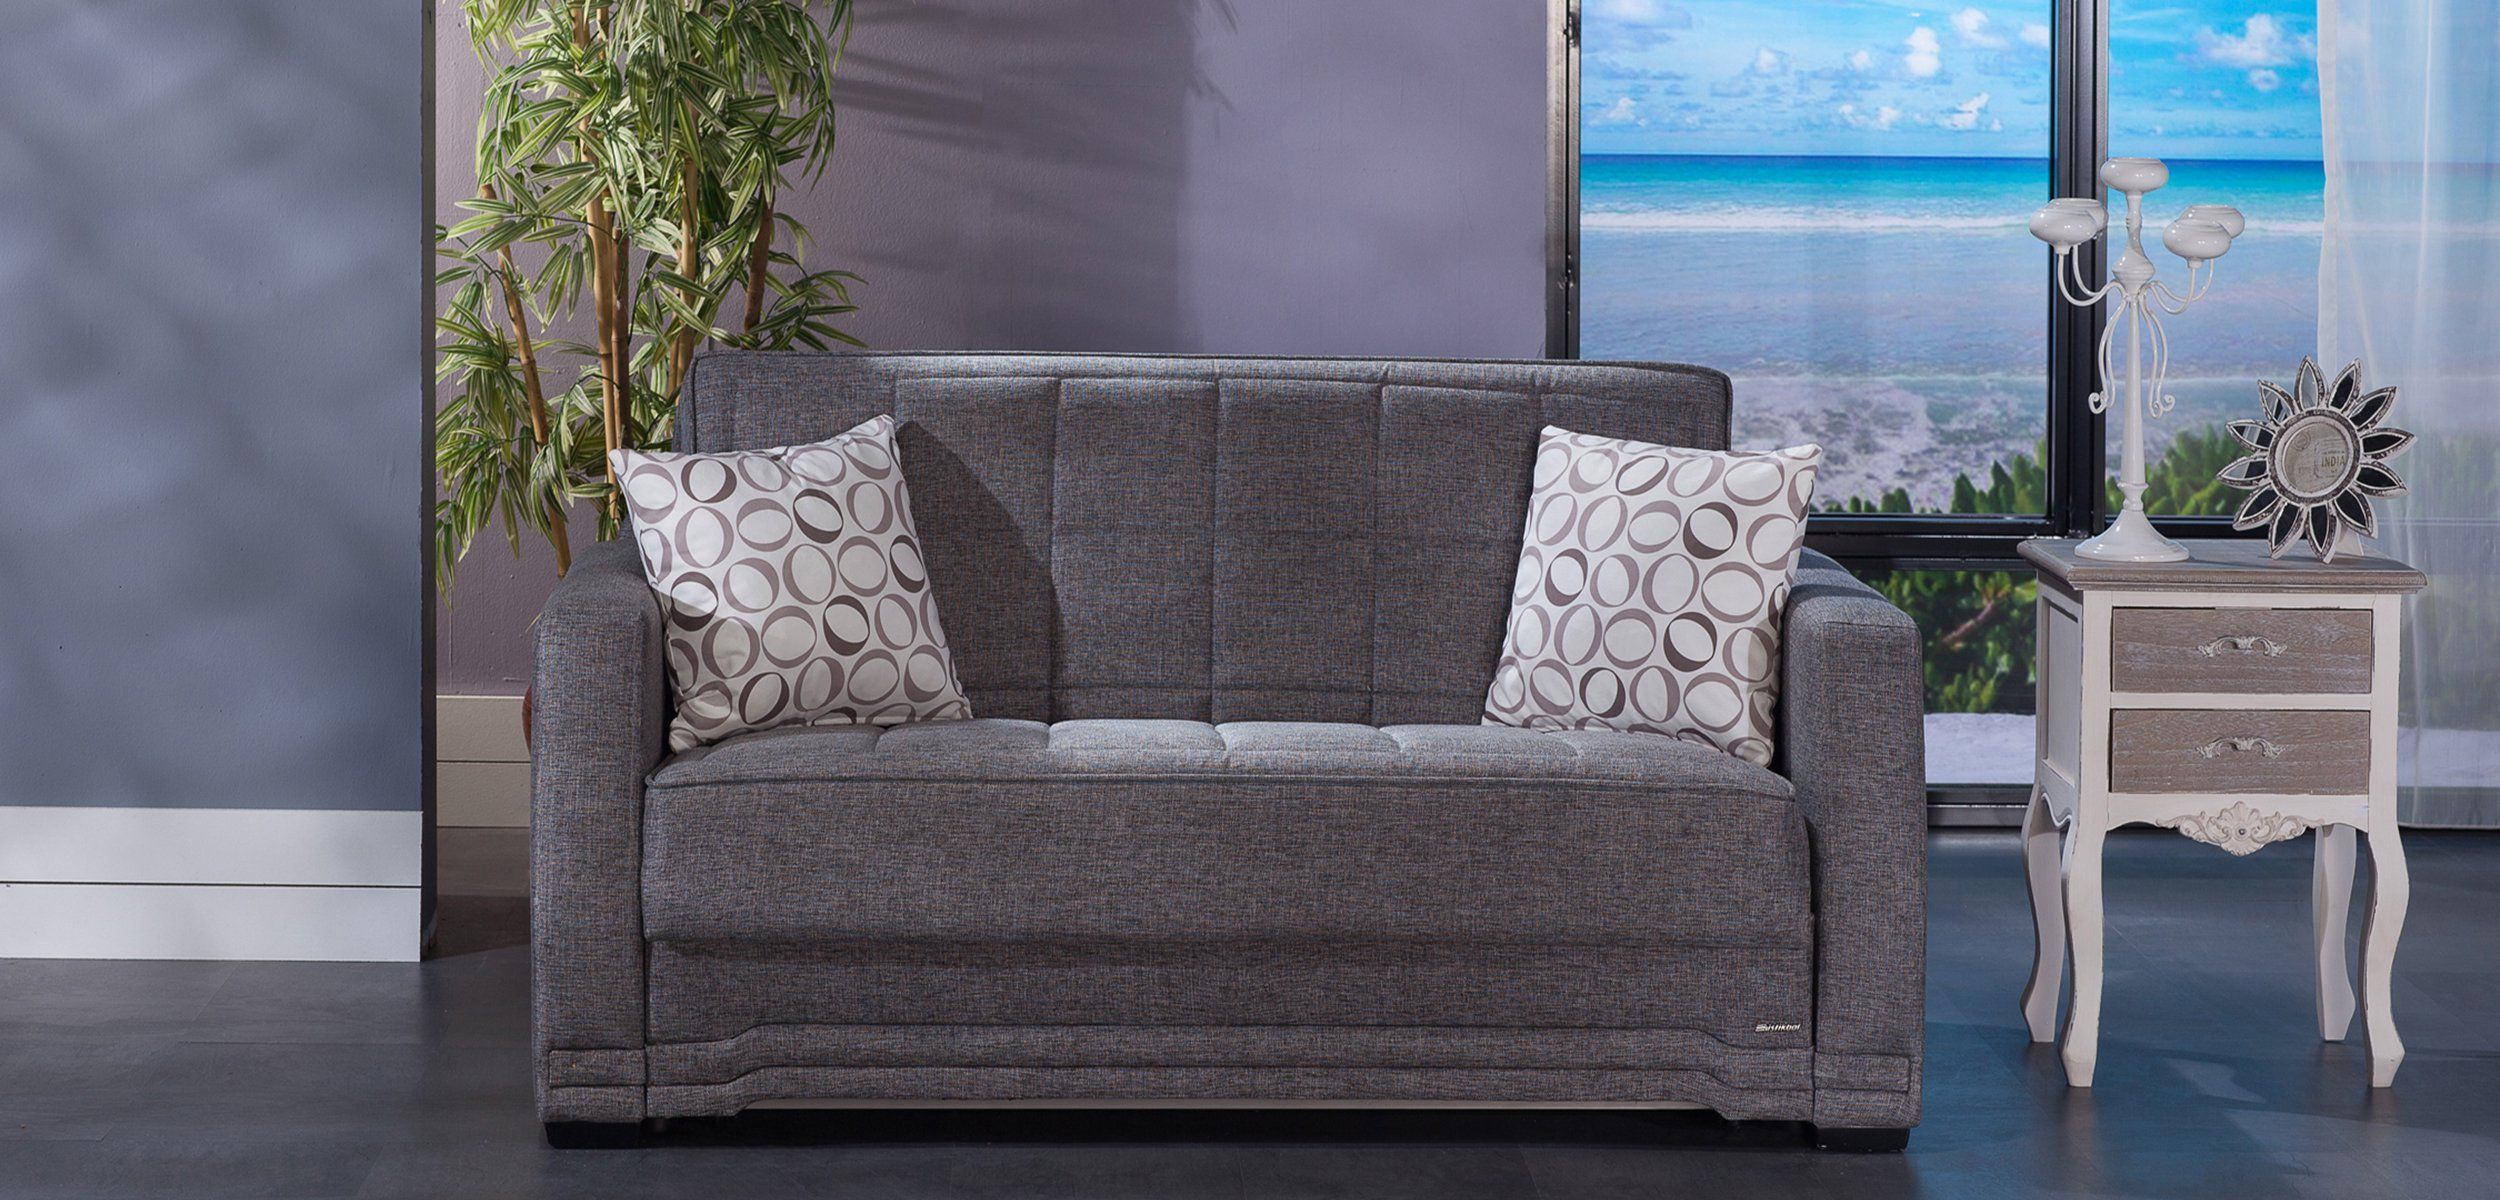 Miraculous Valerie Diego Gray Loveseat Sleeper By Istikbal Furniture Pabps2019 Chair Design Images Pabps2019Com